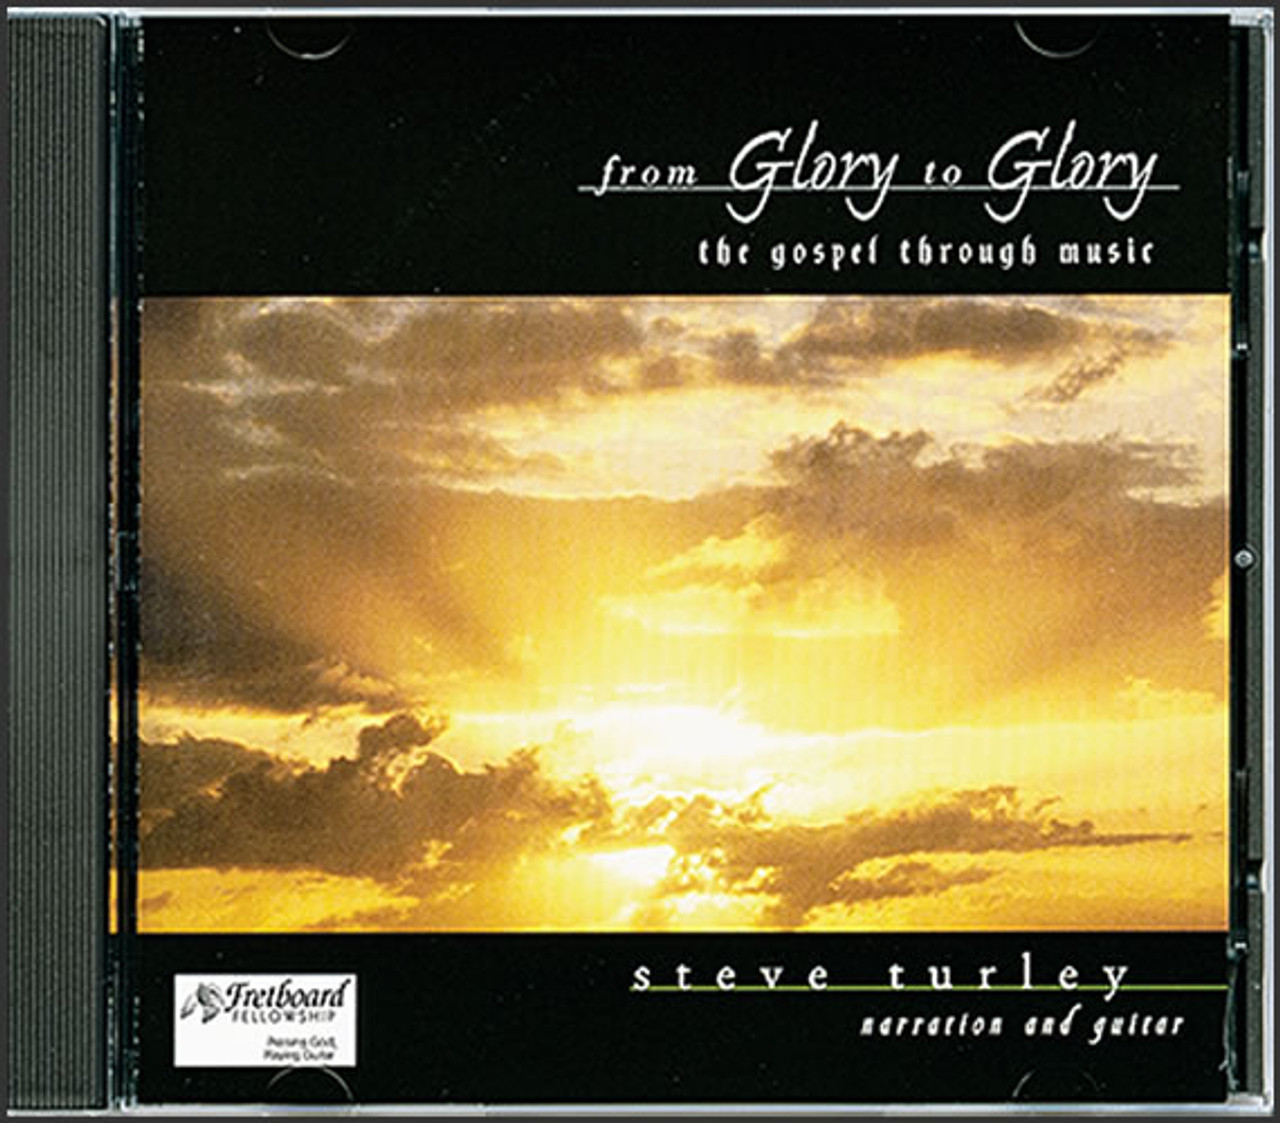 From Glory to Glory: The Gospel Through Music